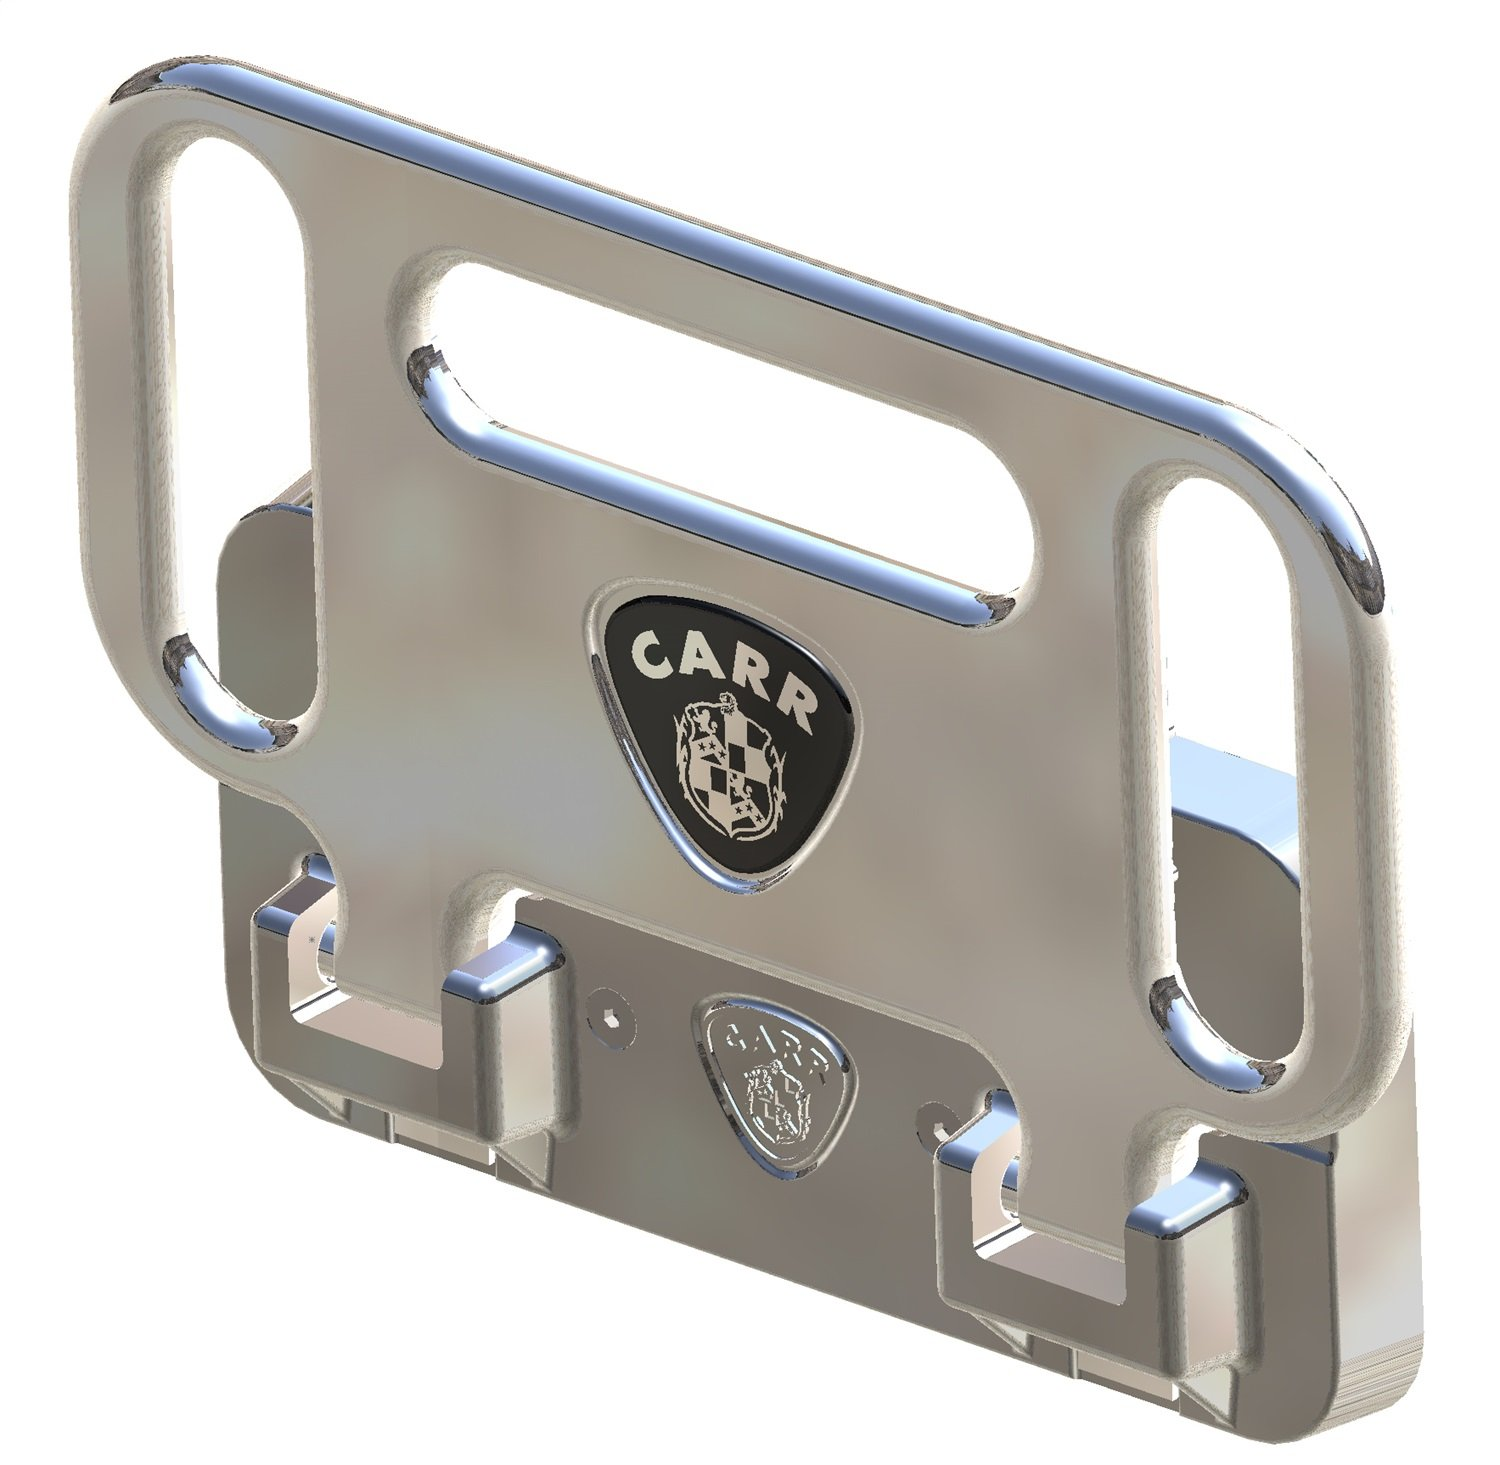 Carrs 193012 Hd Mega Polished Hitch Step with Light for 2 and 2-1//2 Receivers